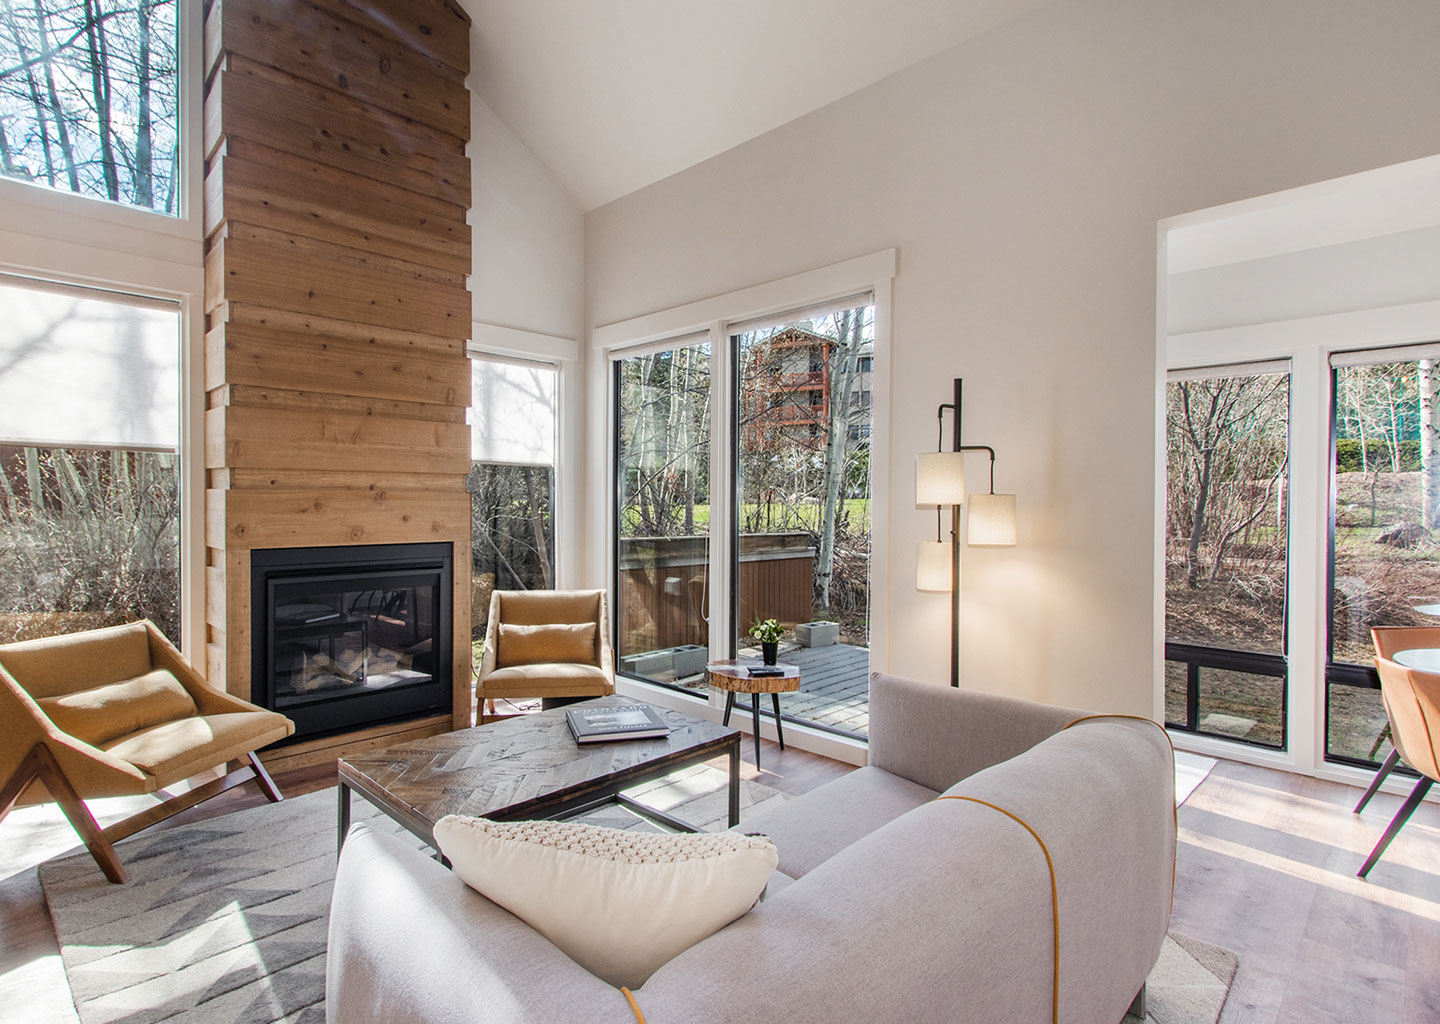 Stylish Living Room with Tall Wood Fireplace at Three Kings Condominiums in Downtown Park City, Utah